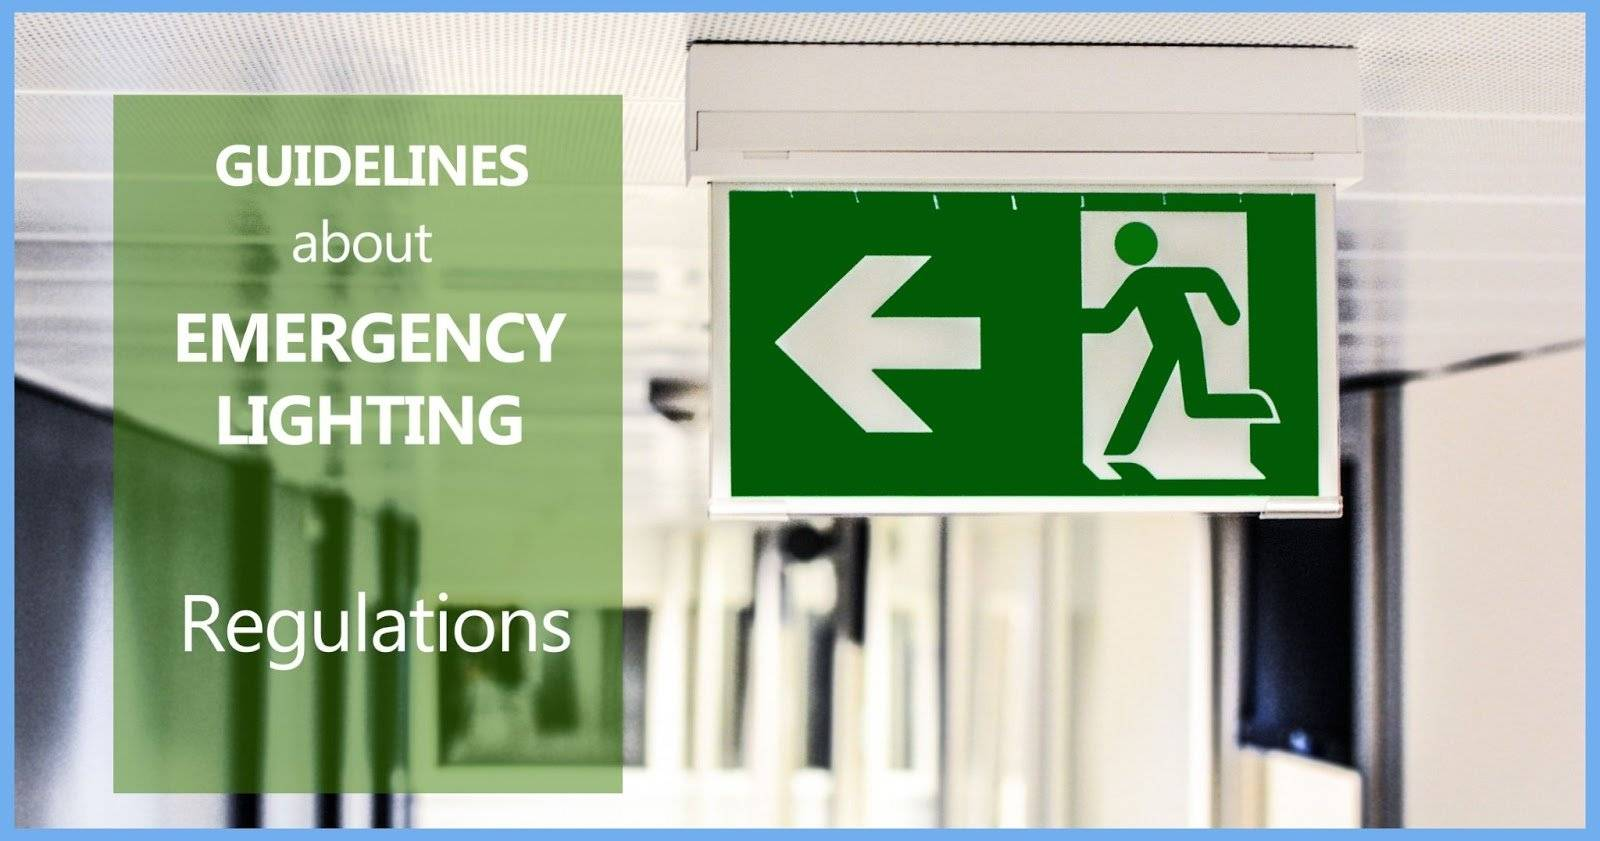 Guidelines about Emergency Lighting Regulations Featured Image